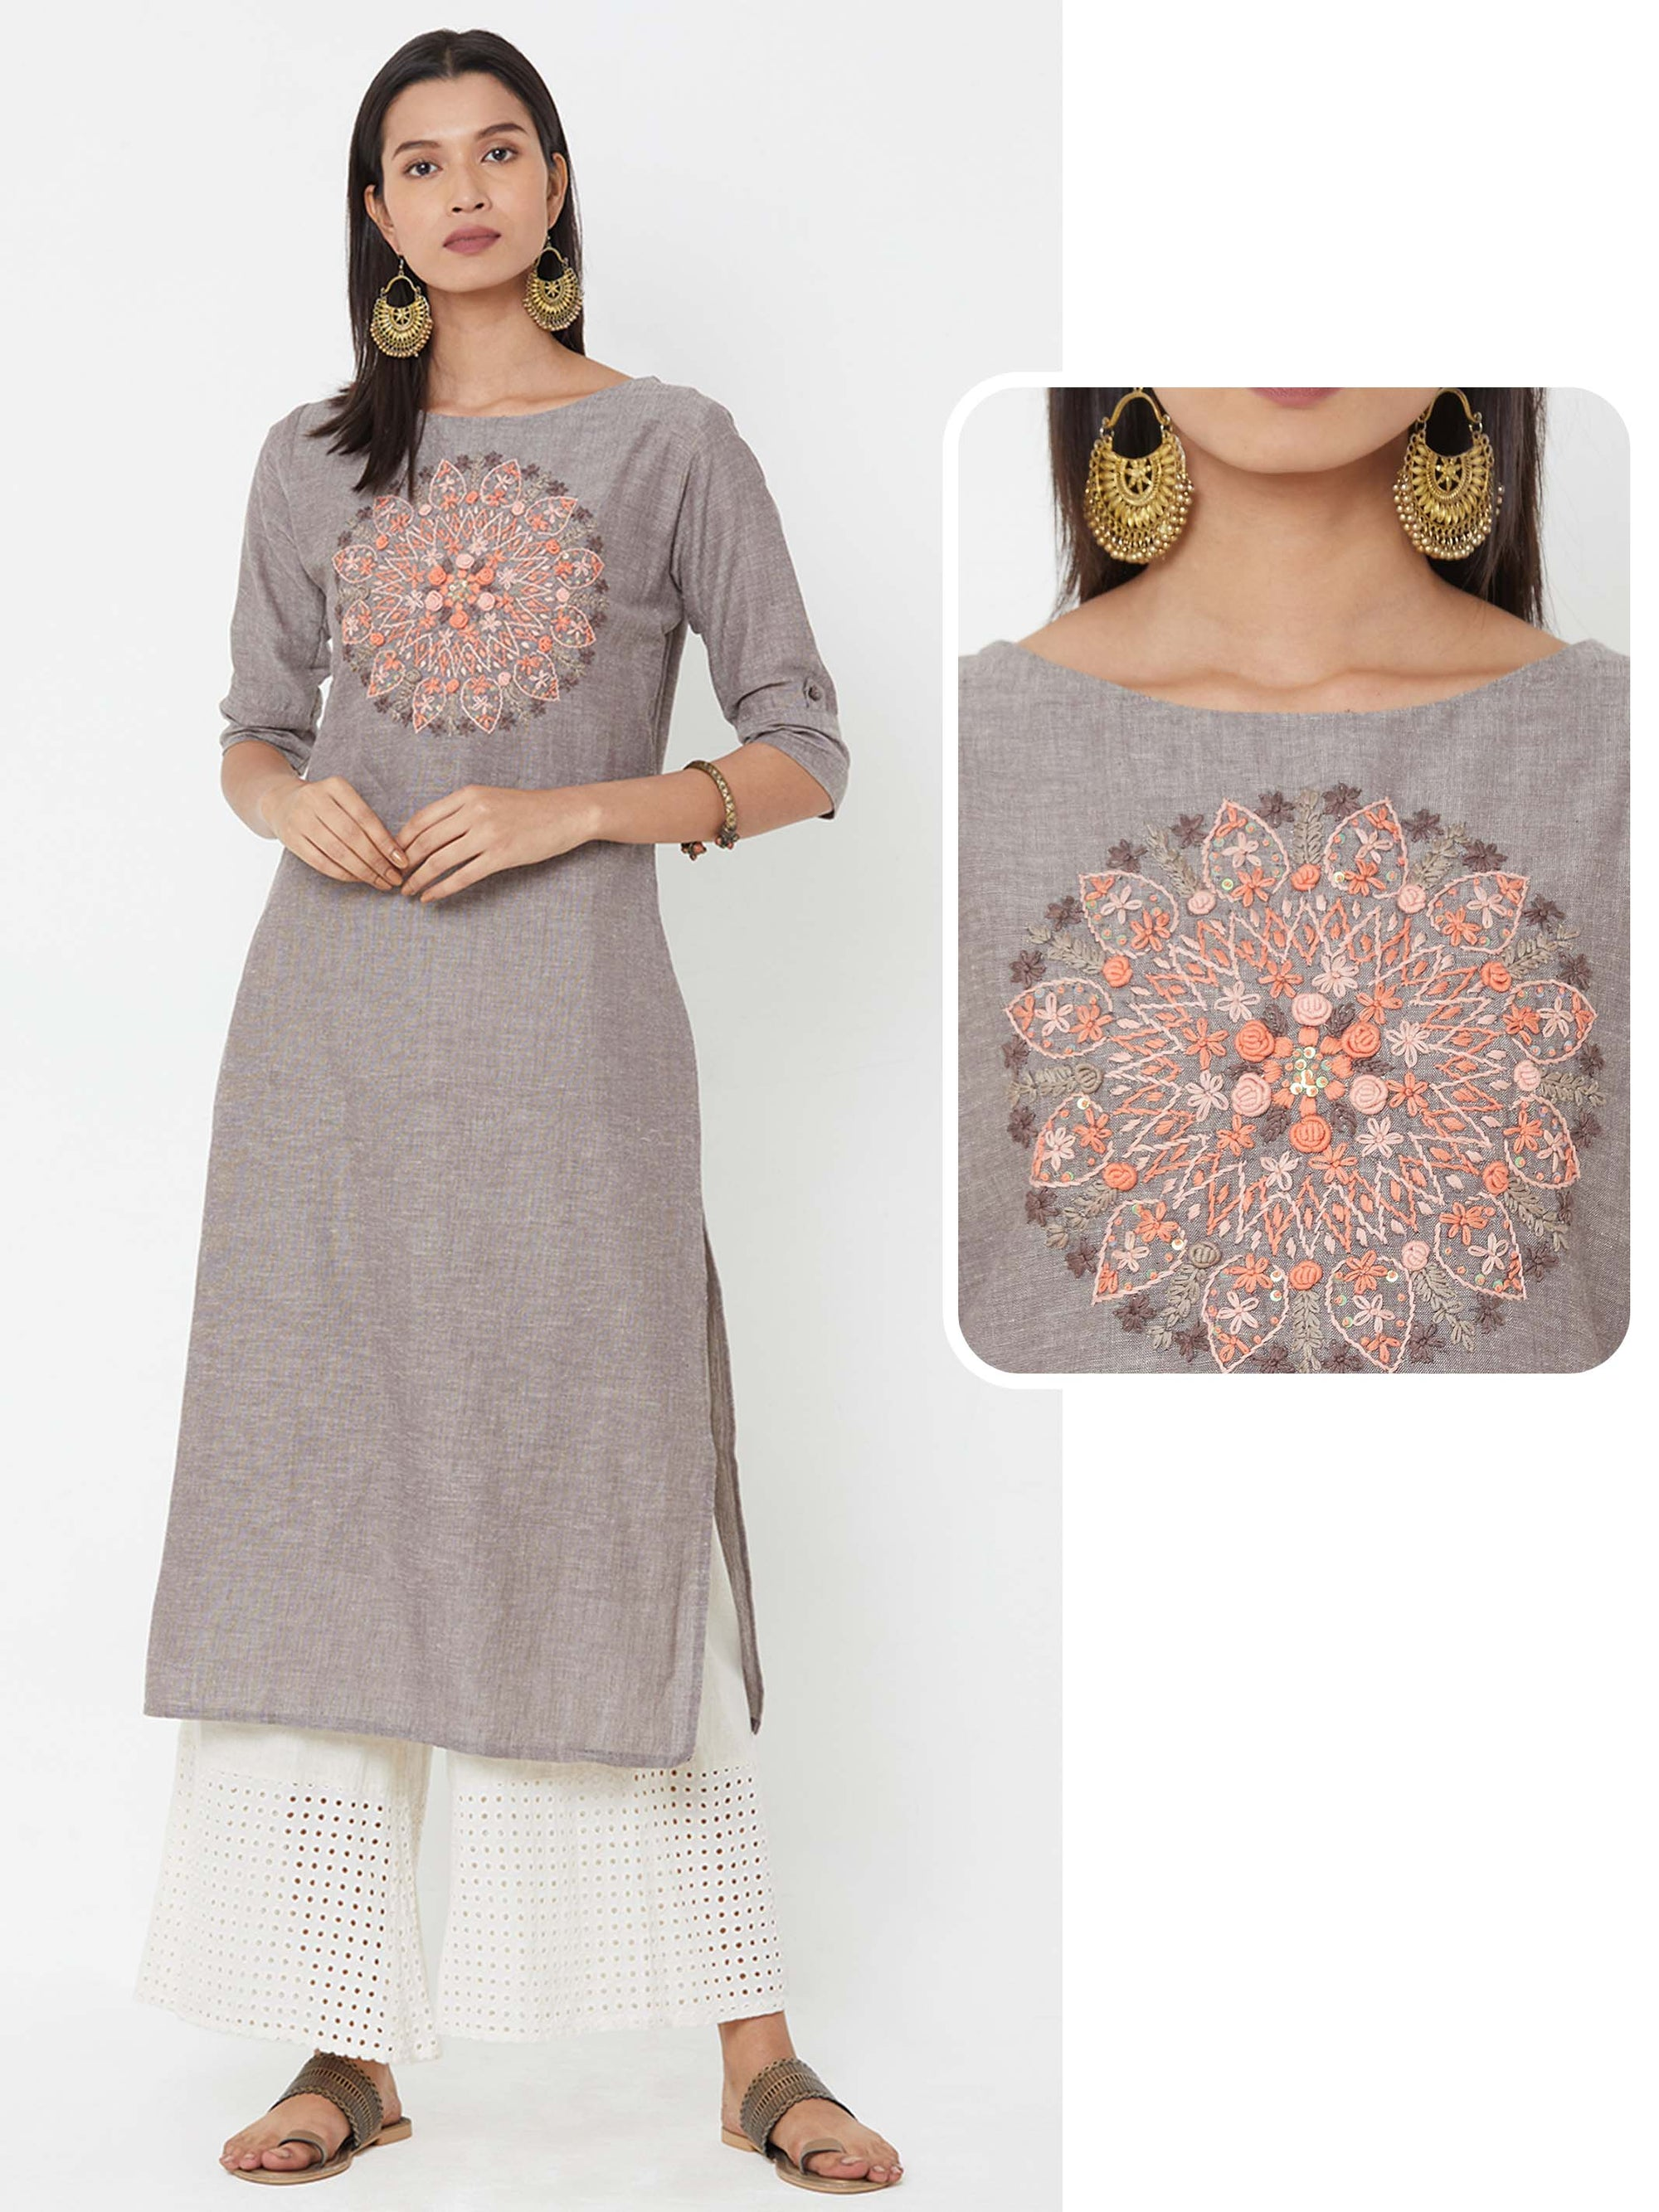 Bullion Knot Floral Embroidery Kurta - Grey